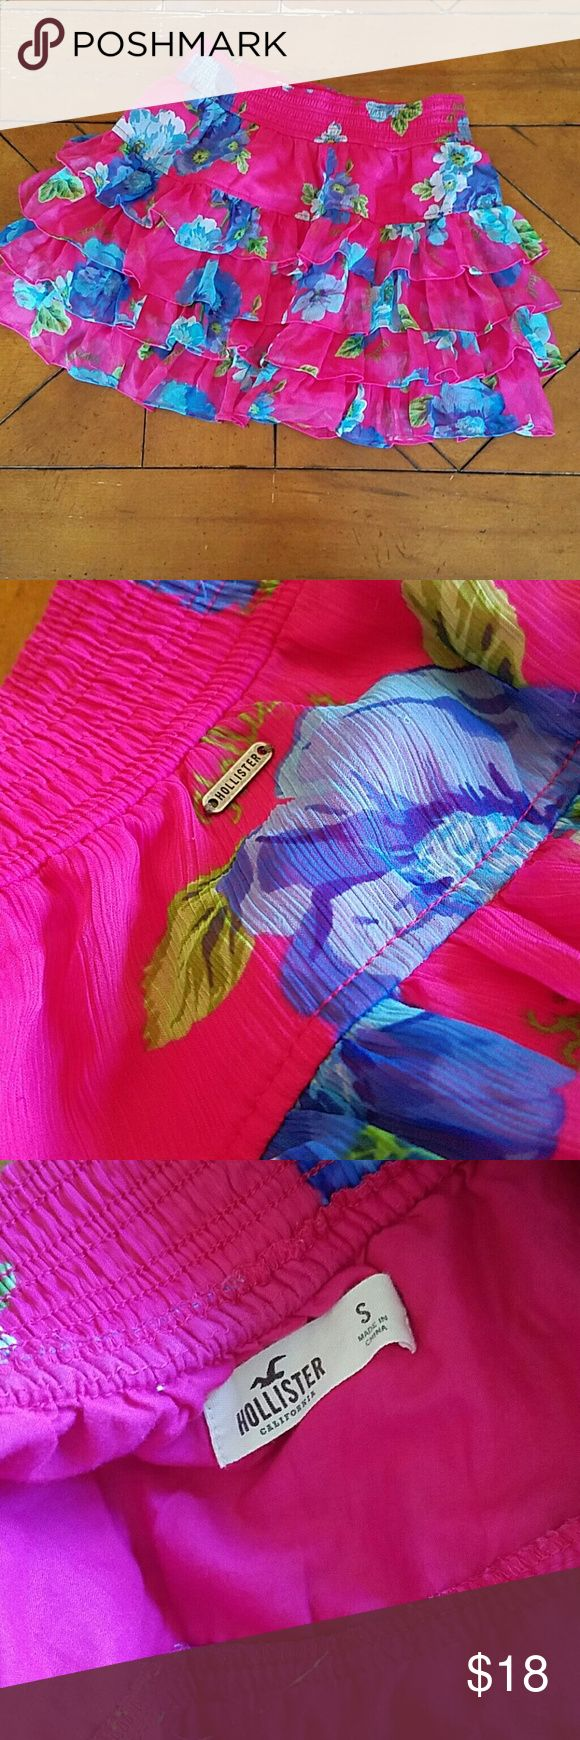 Cute Hollister Mini Ruffle Skirt Size S small Hollister skirt. Mid to high thigh, layered ruffles, hot pink with blue flowers. Adorable. Like new. NWOT Hollister Skirts Mini